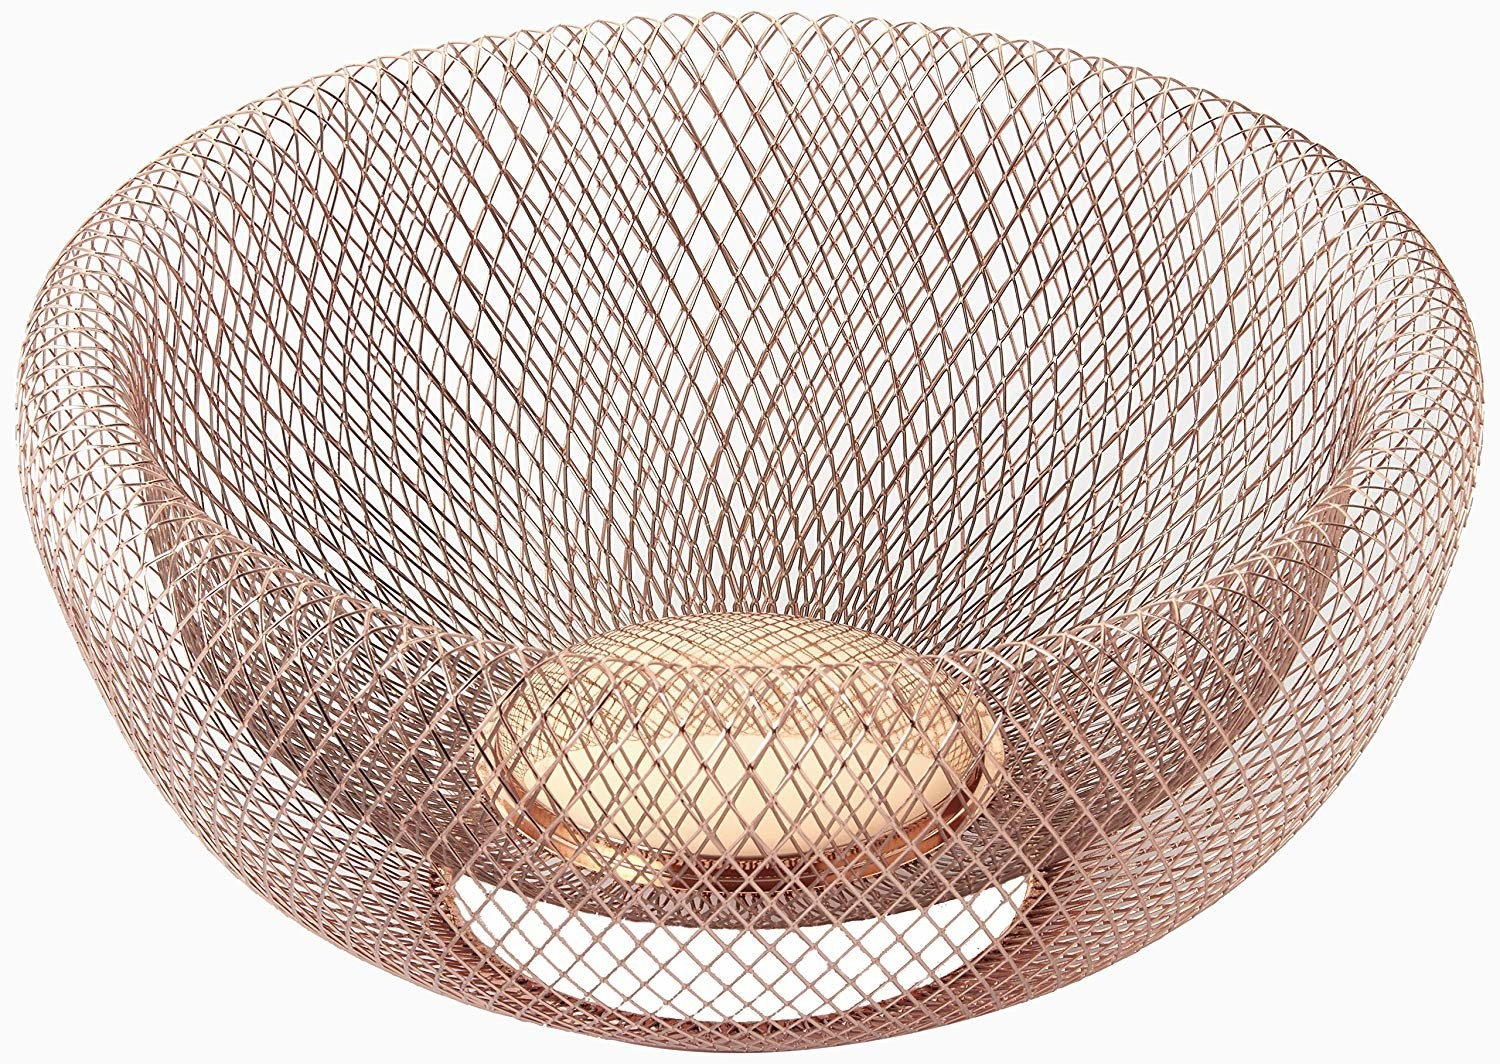 A photo of the mesh bowl